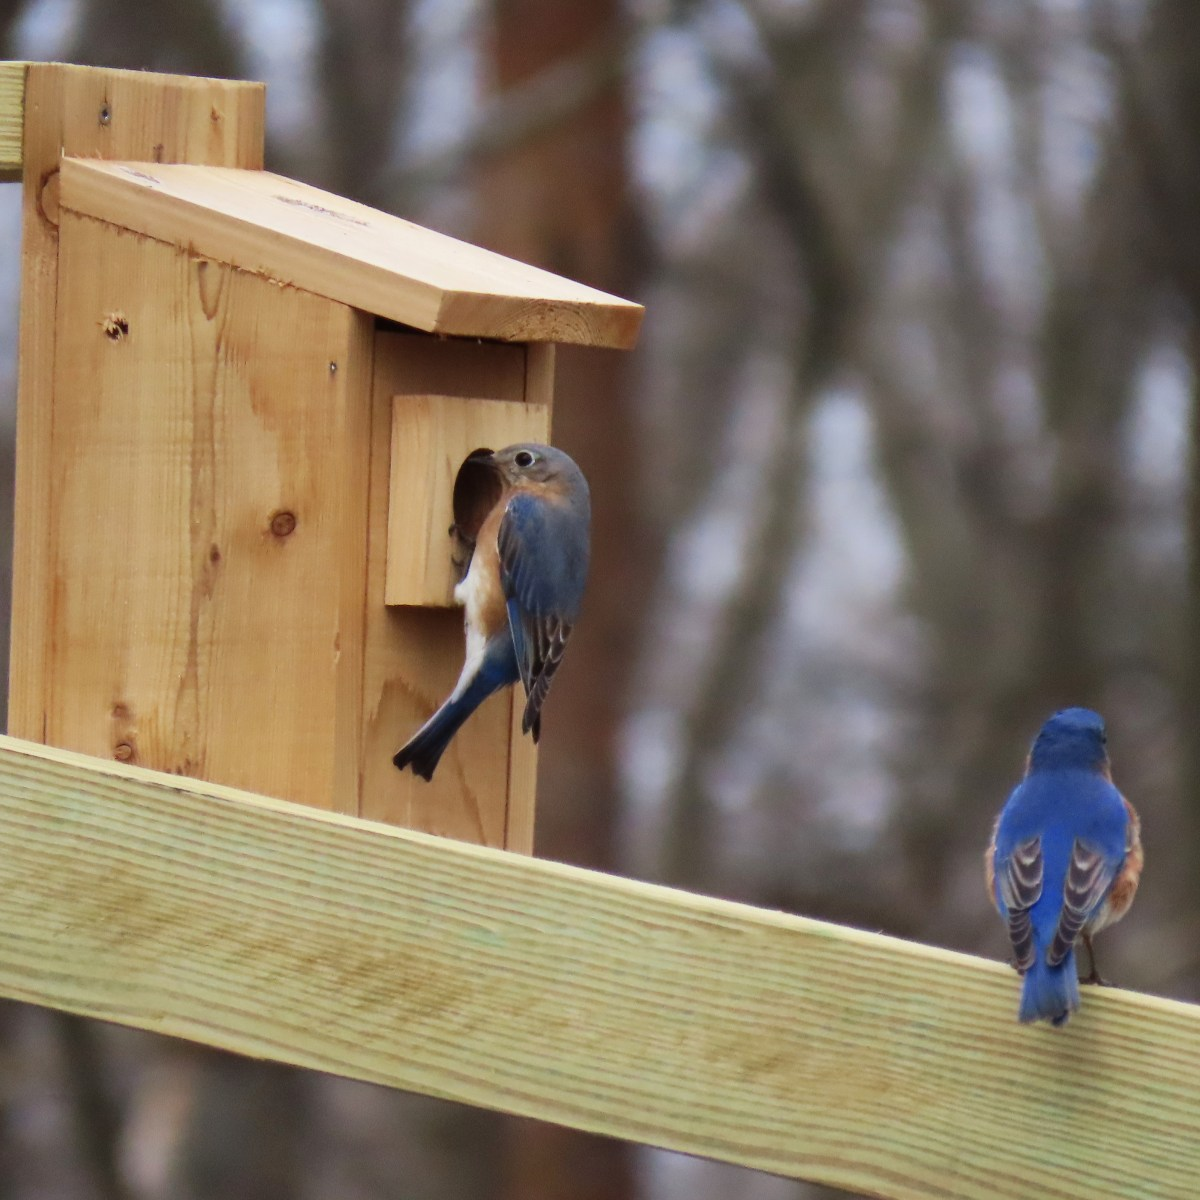 An Eastern Bluebird perched on a nest box while another is perched on a railing nearby